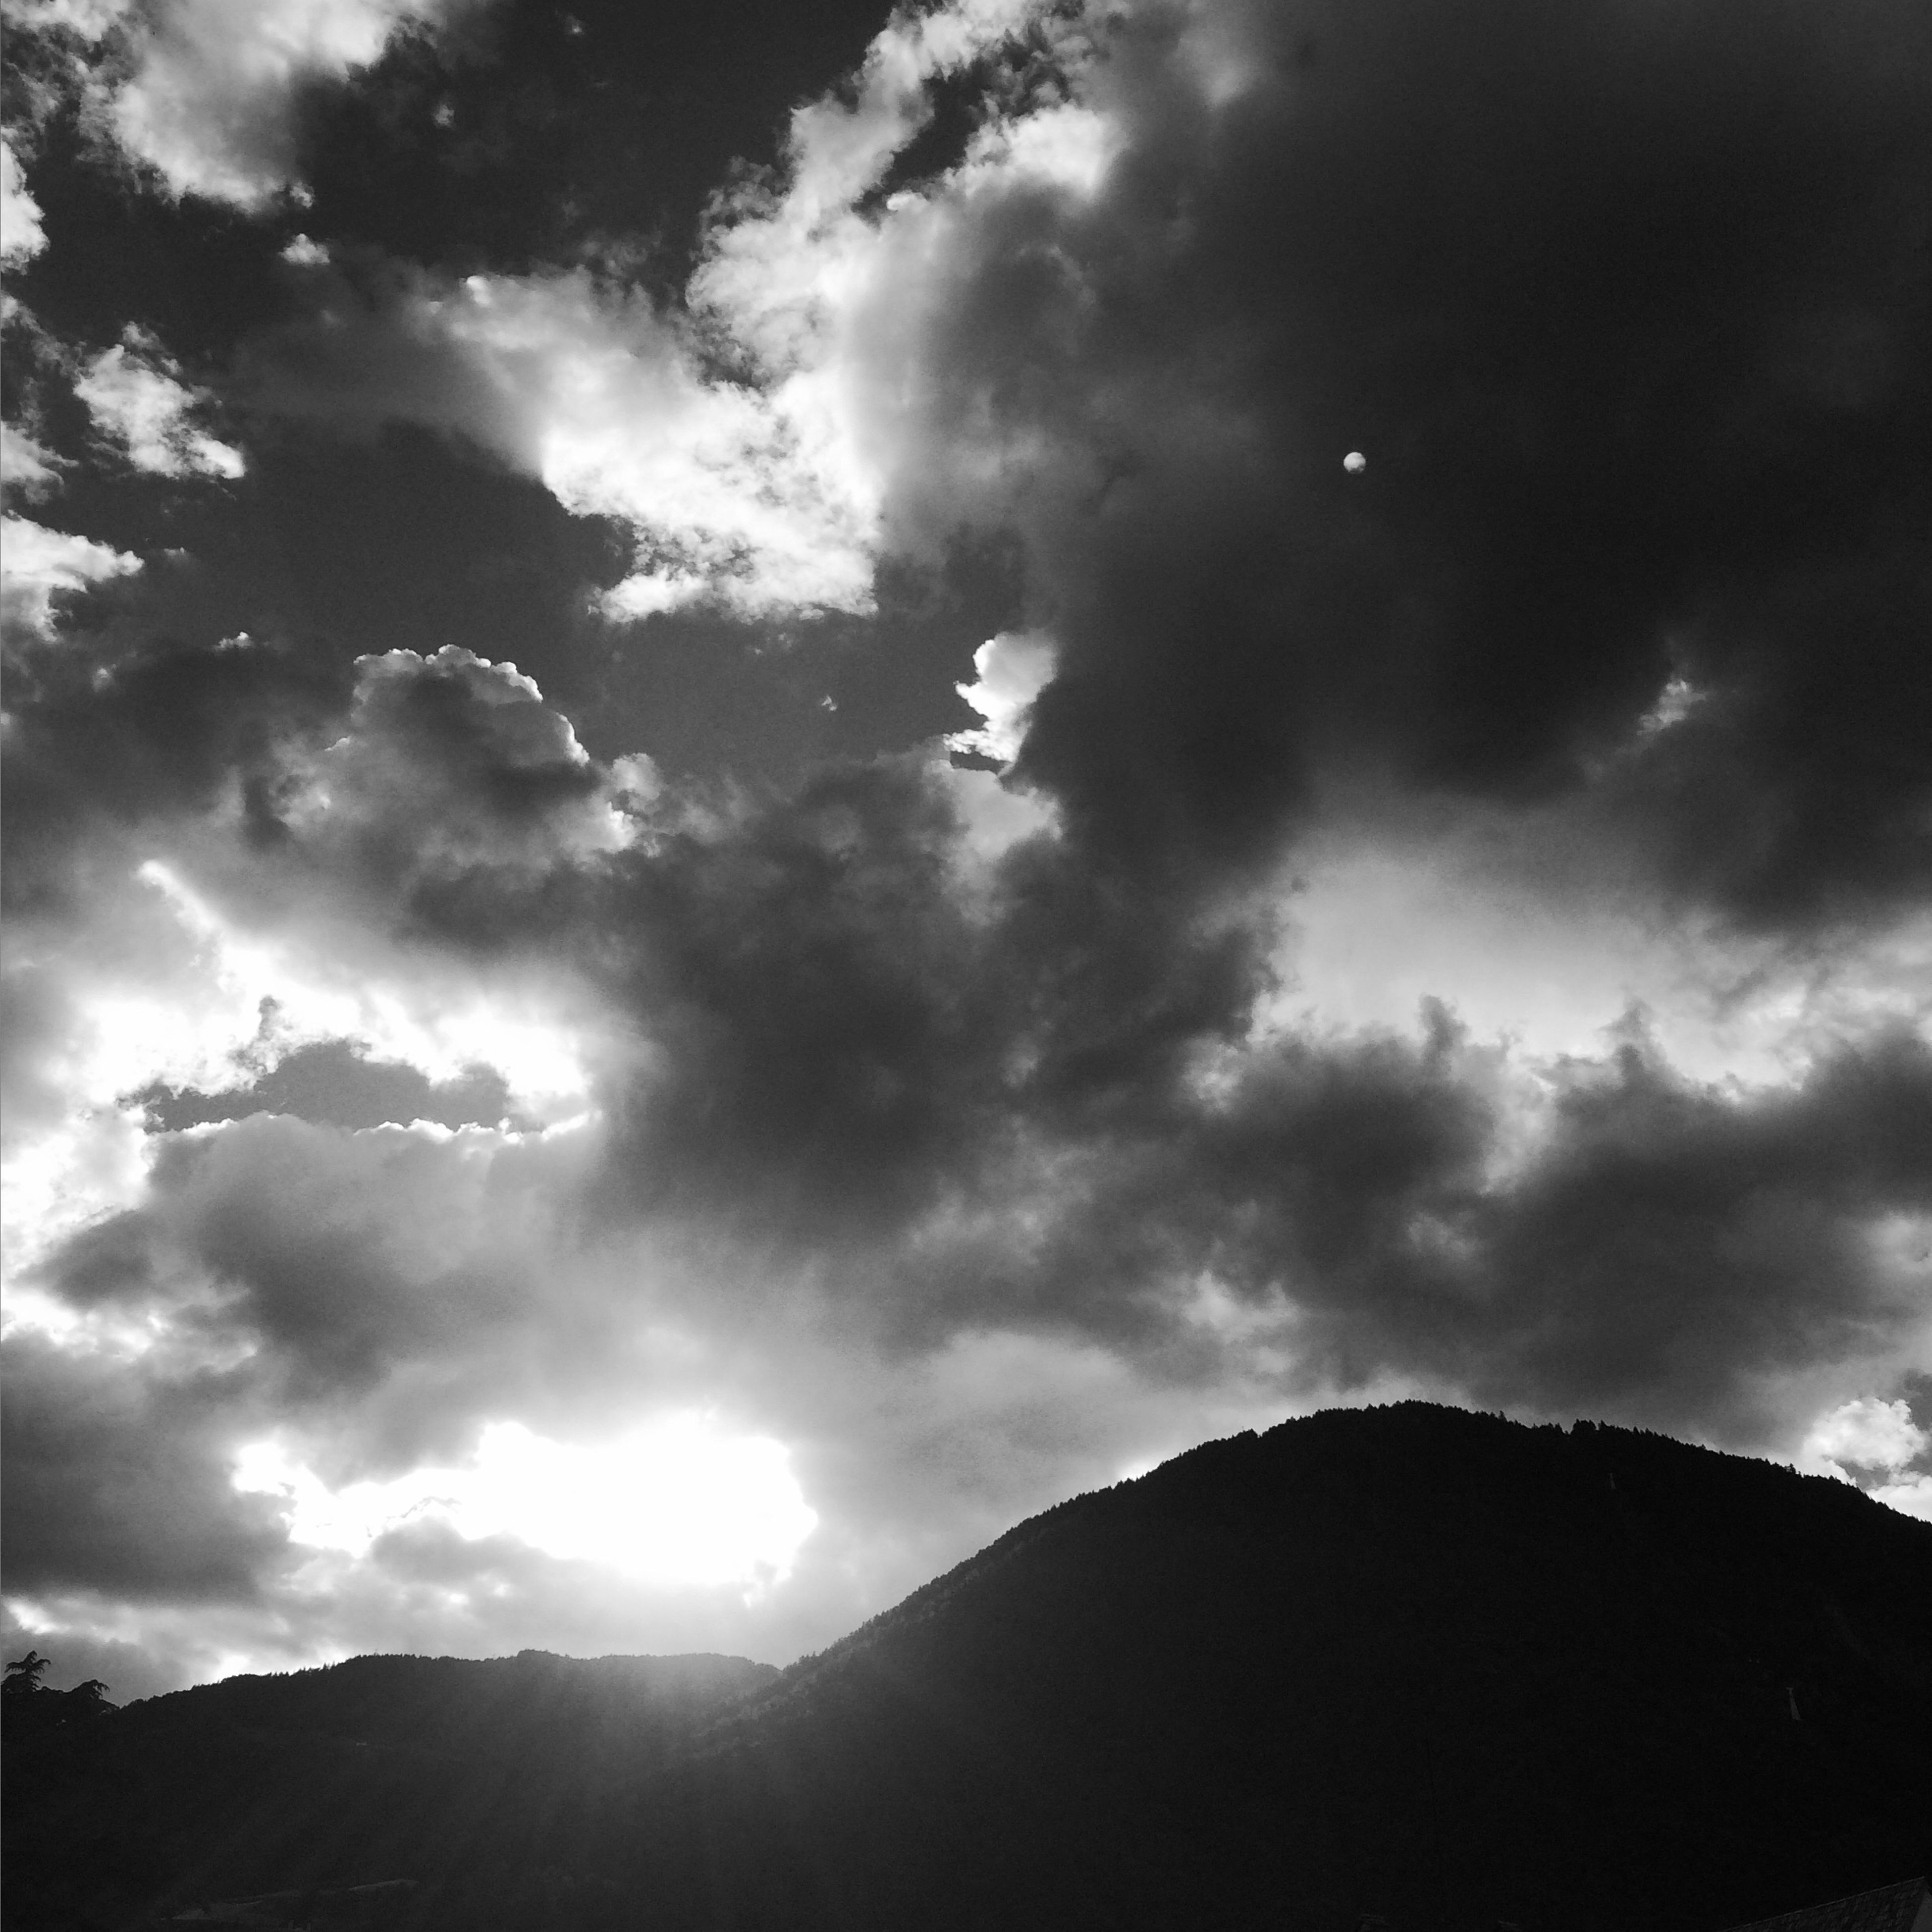 sky, cloud - sky, low angle view, flying, sun, sunbeam, beauty in nature, cloudy, bird, nature, cloud, sunlight, silhouette, scenics, animal themes, tranquility, tranquil scene, mountain, mid-air, day